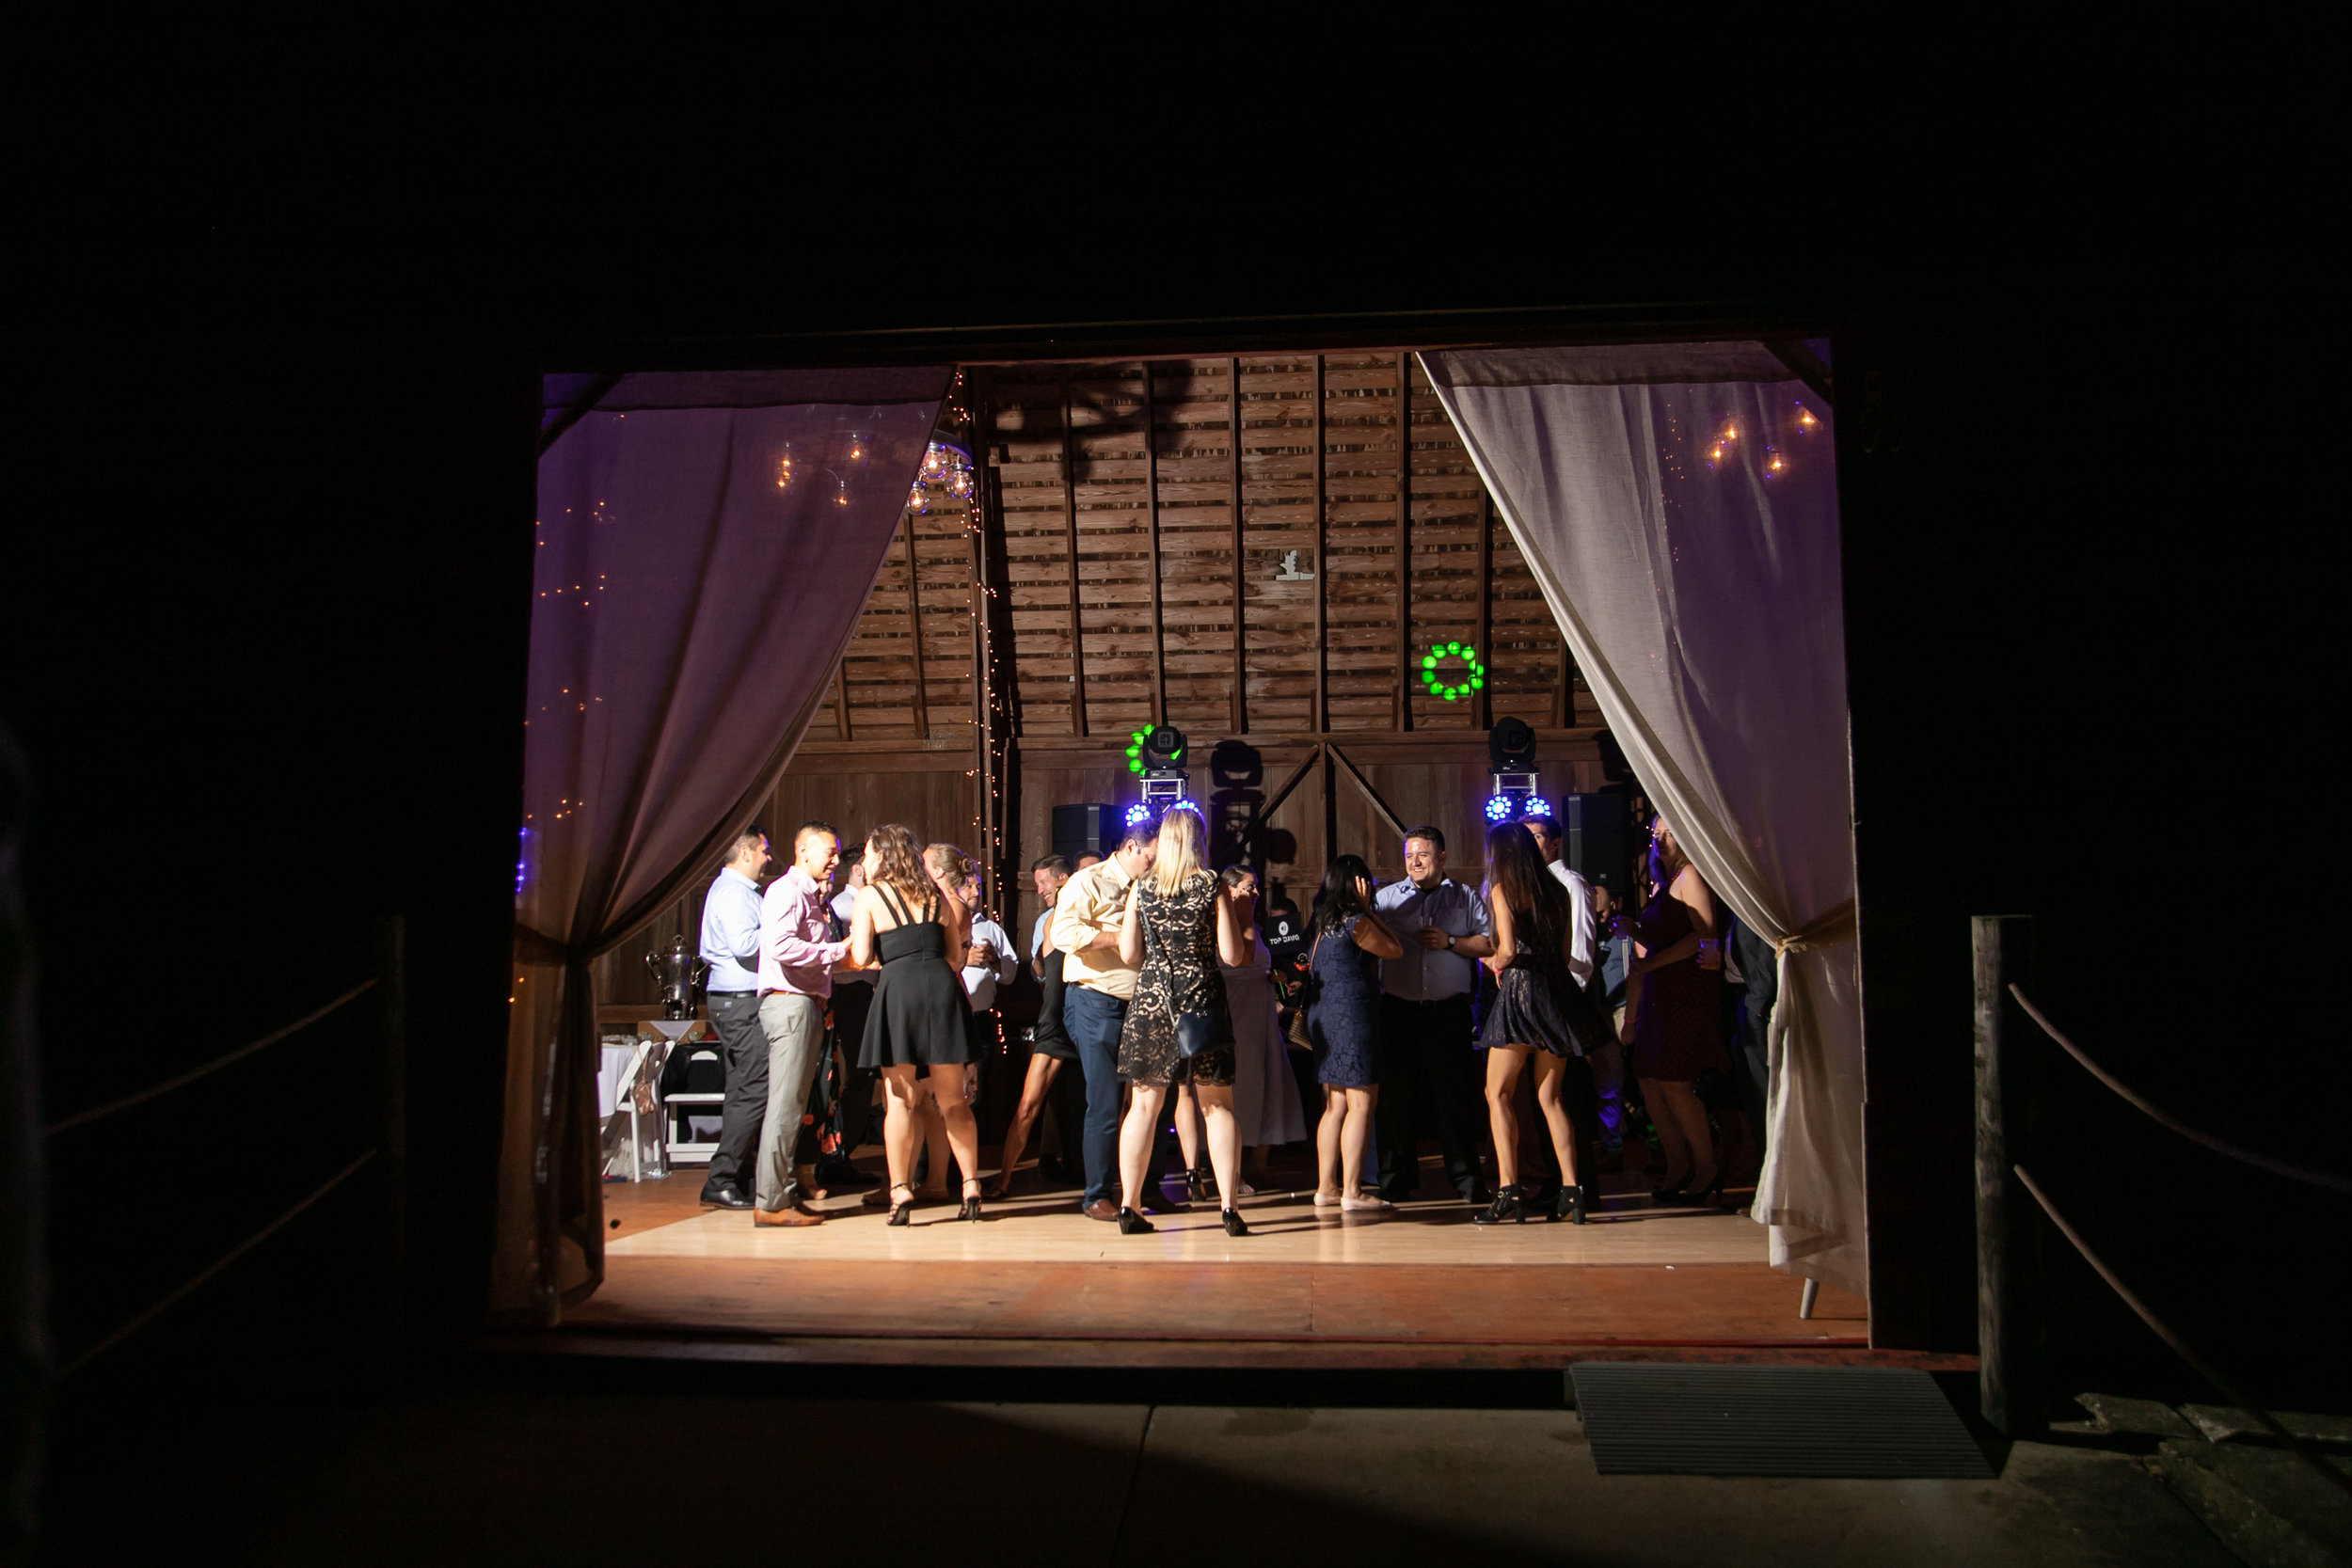 Dancing at Barn Wedding Venue